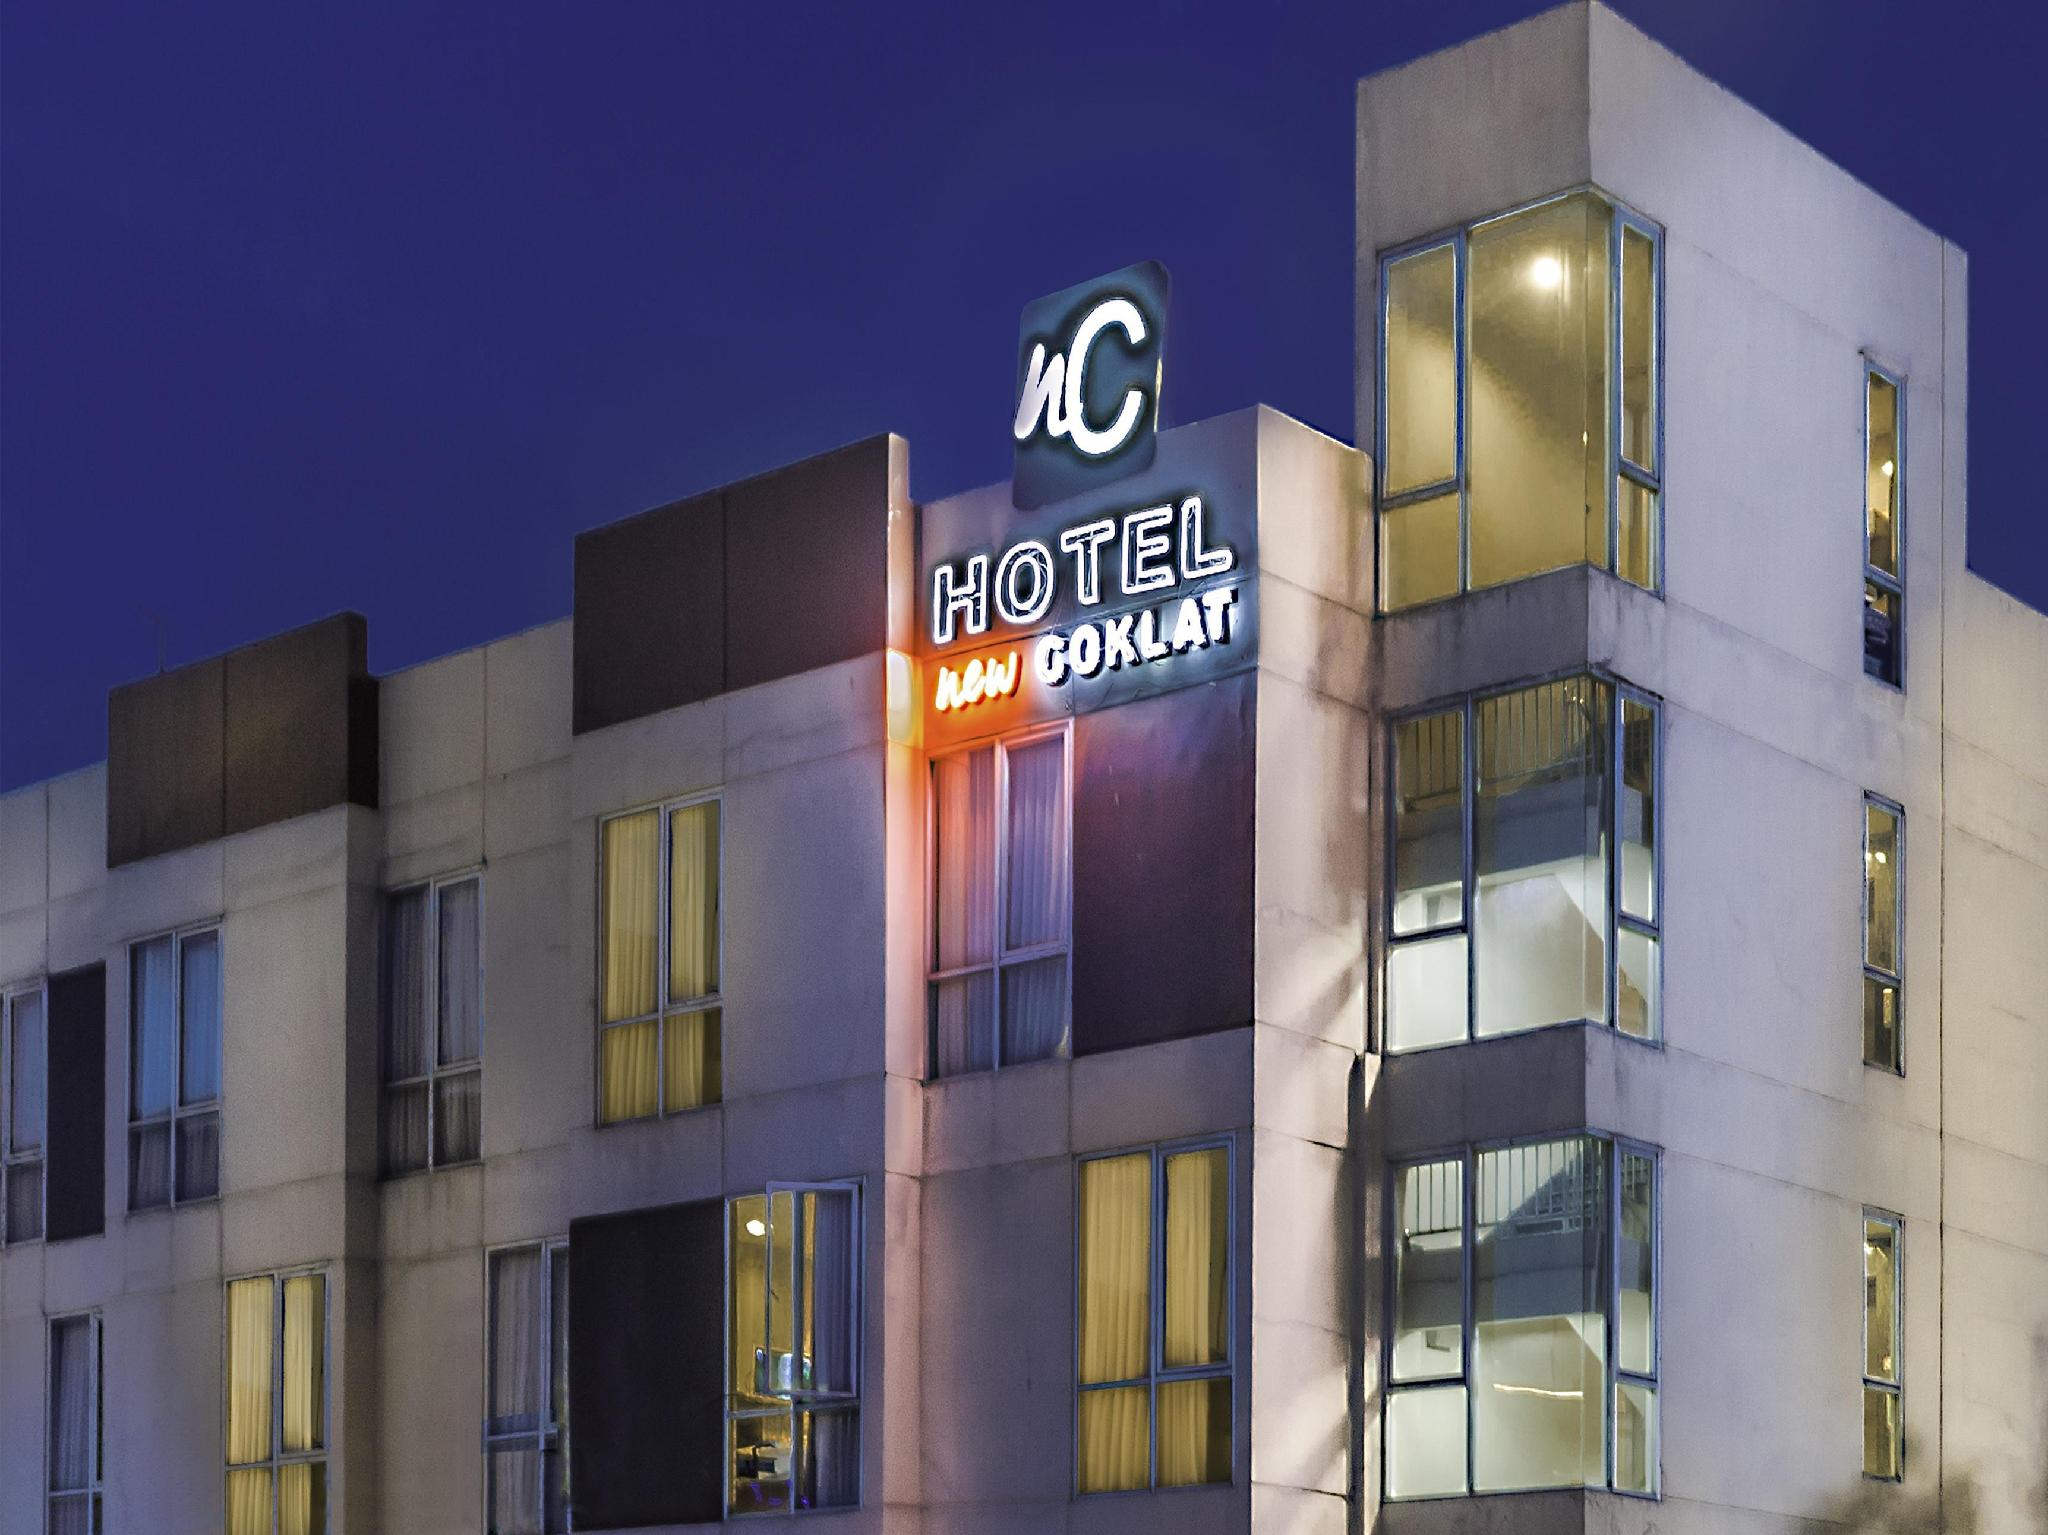 Hotel New Coklat picture